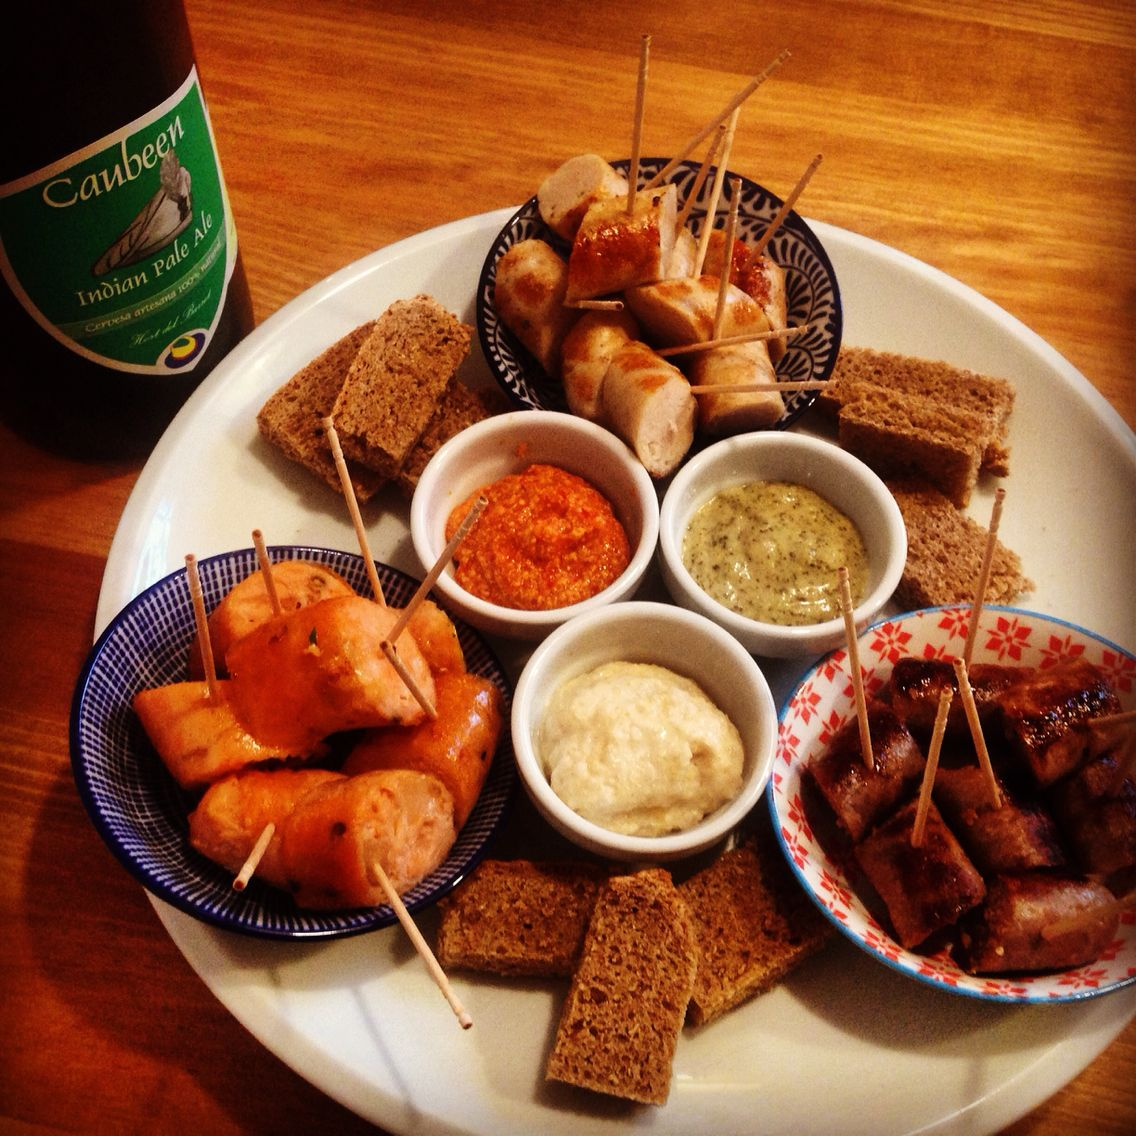 """Our """"Share with friends"""" plate. That is 3 sausages of choice, 3 mustards of choice and a Caubeen Indian Pale Ale (75 cl) craft beer. #mostassabcn #cerveza #mostassa #craftbeer #foodporn"""